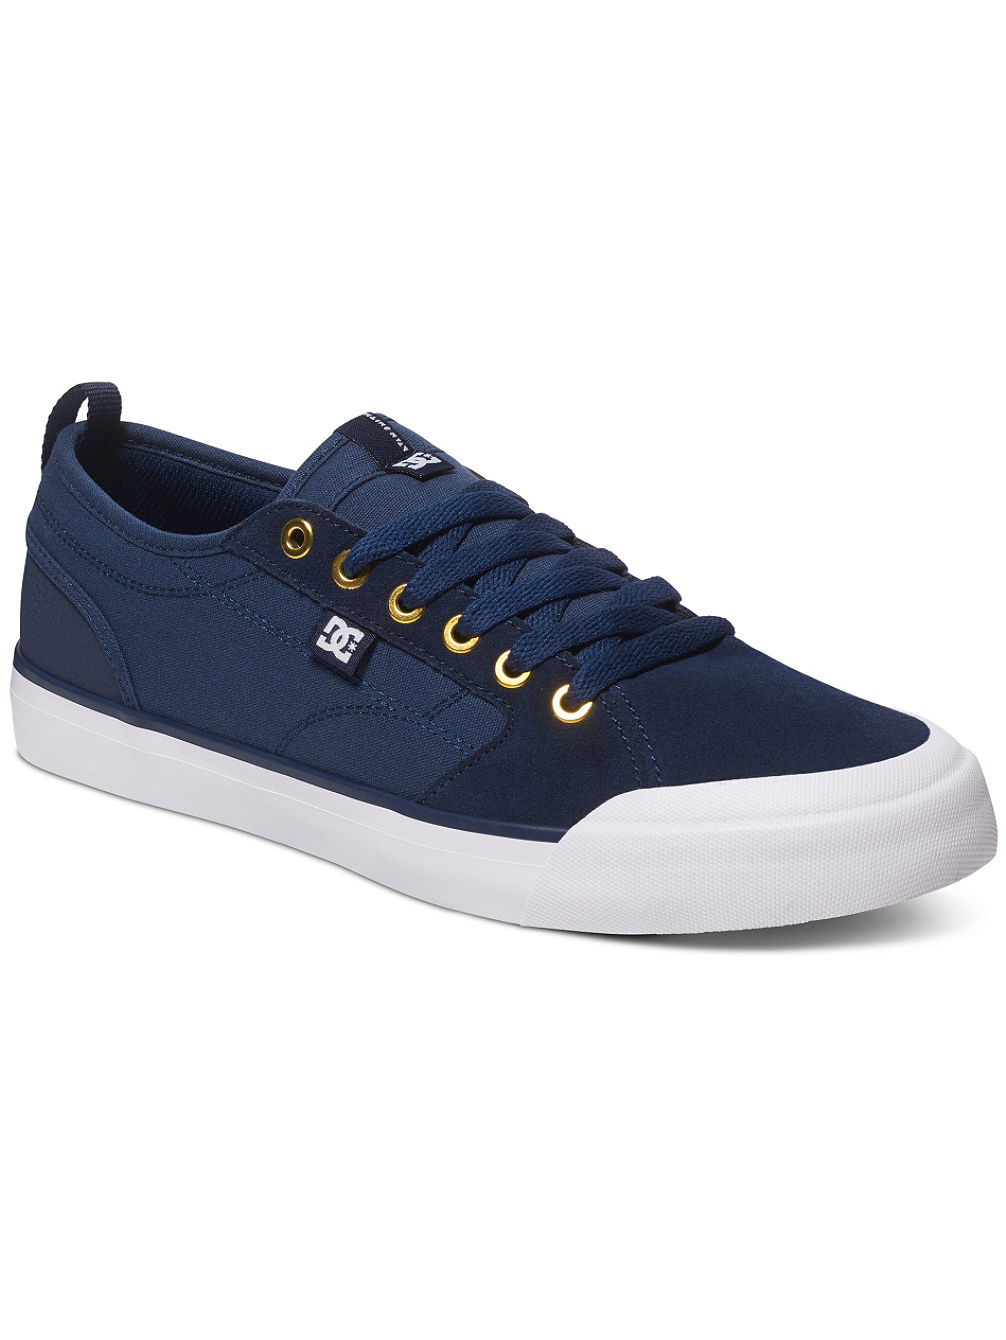 Evan Smith S Skate Shoes